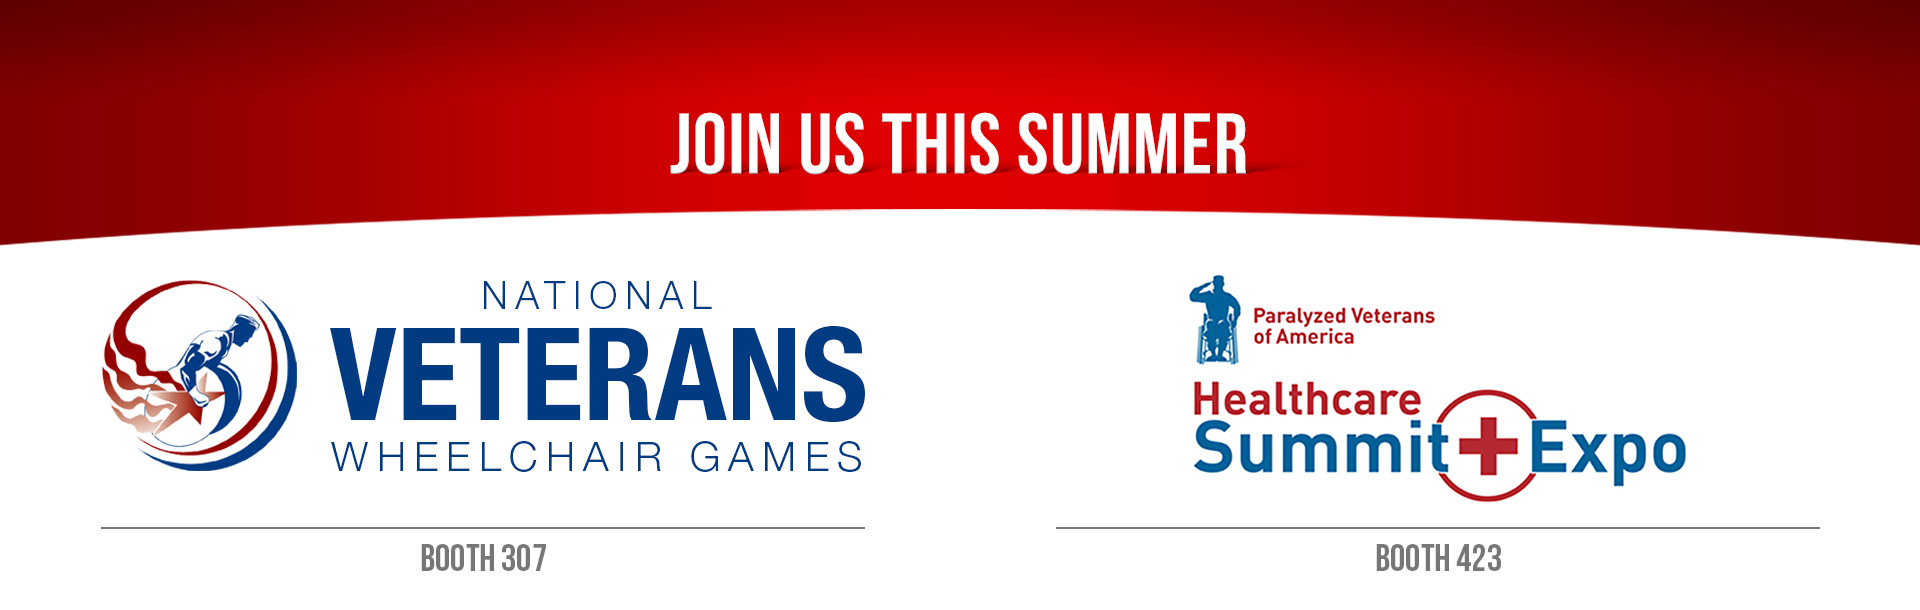 Join us at the National Wheelchair Games and PVA Healthcare Summit and Expo!